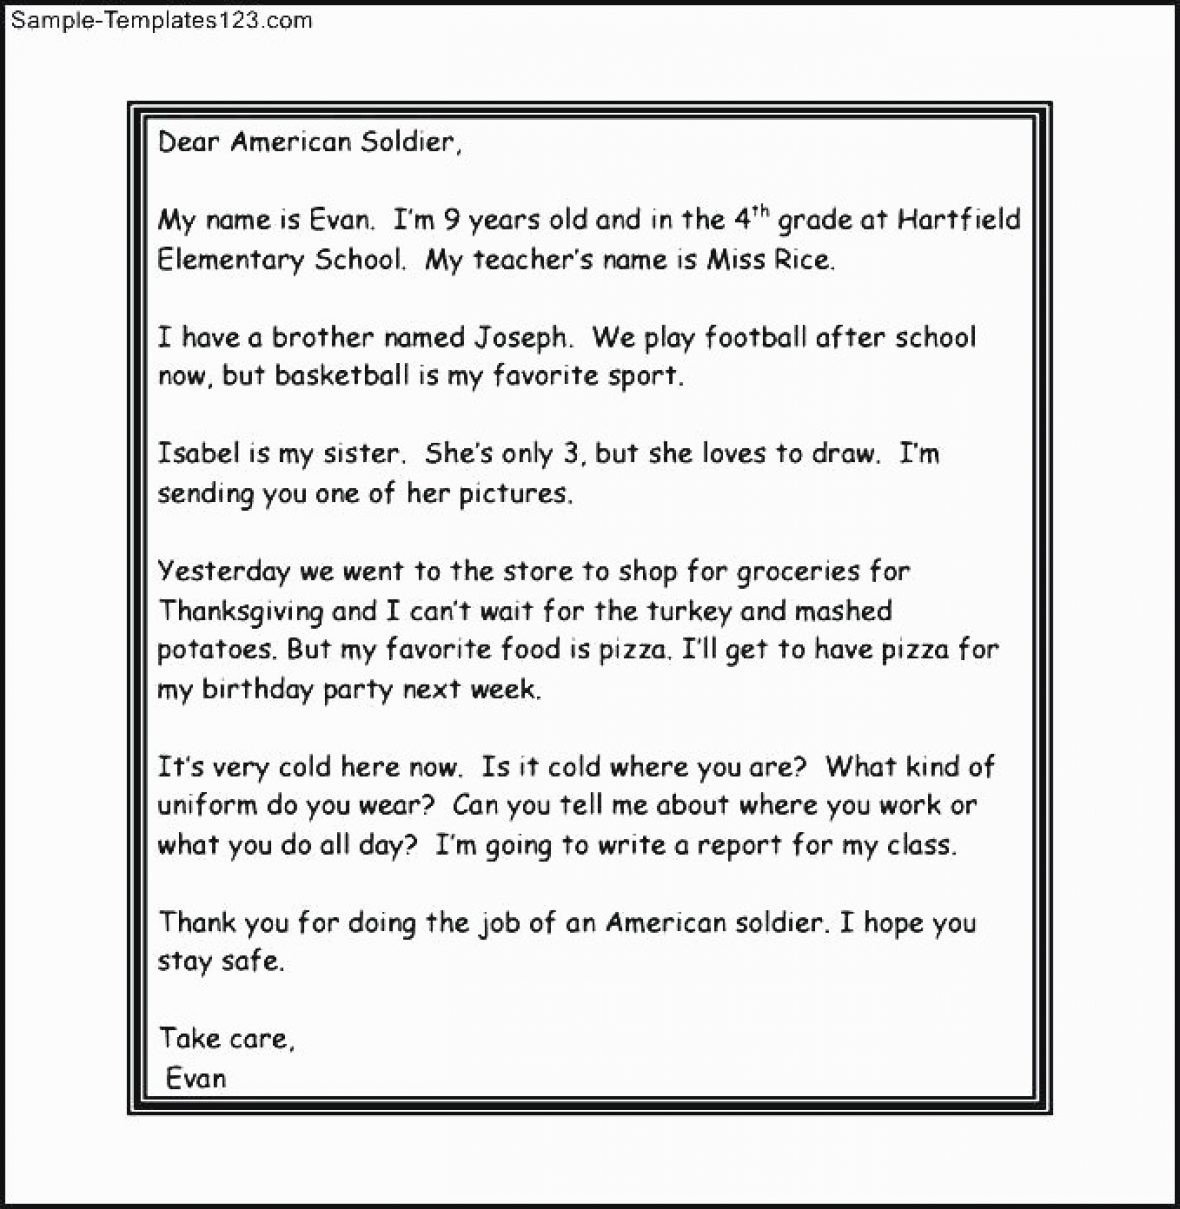 how to write a letter to a sol r template